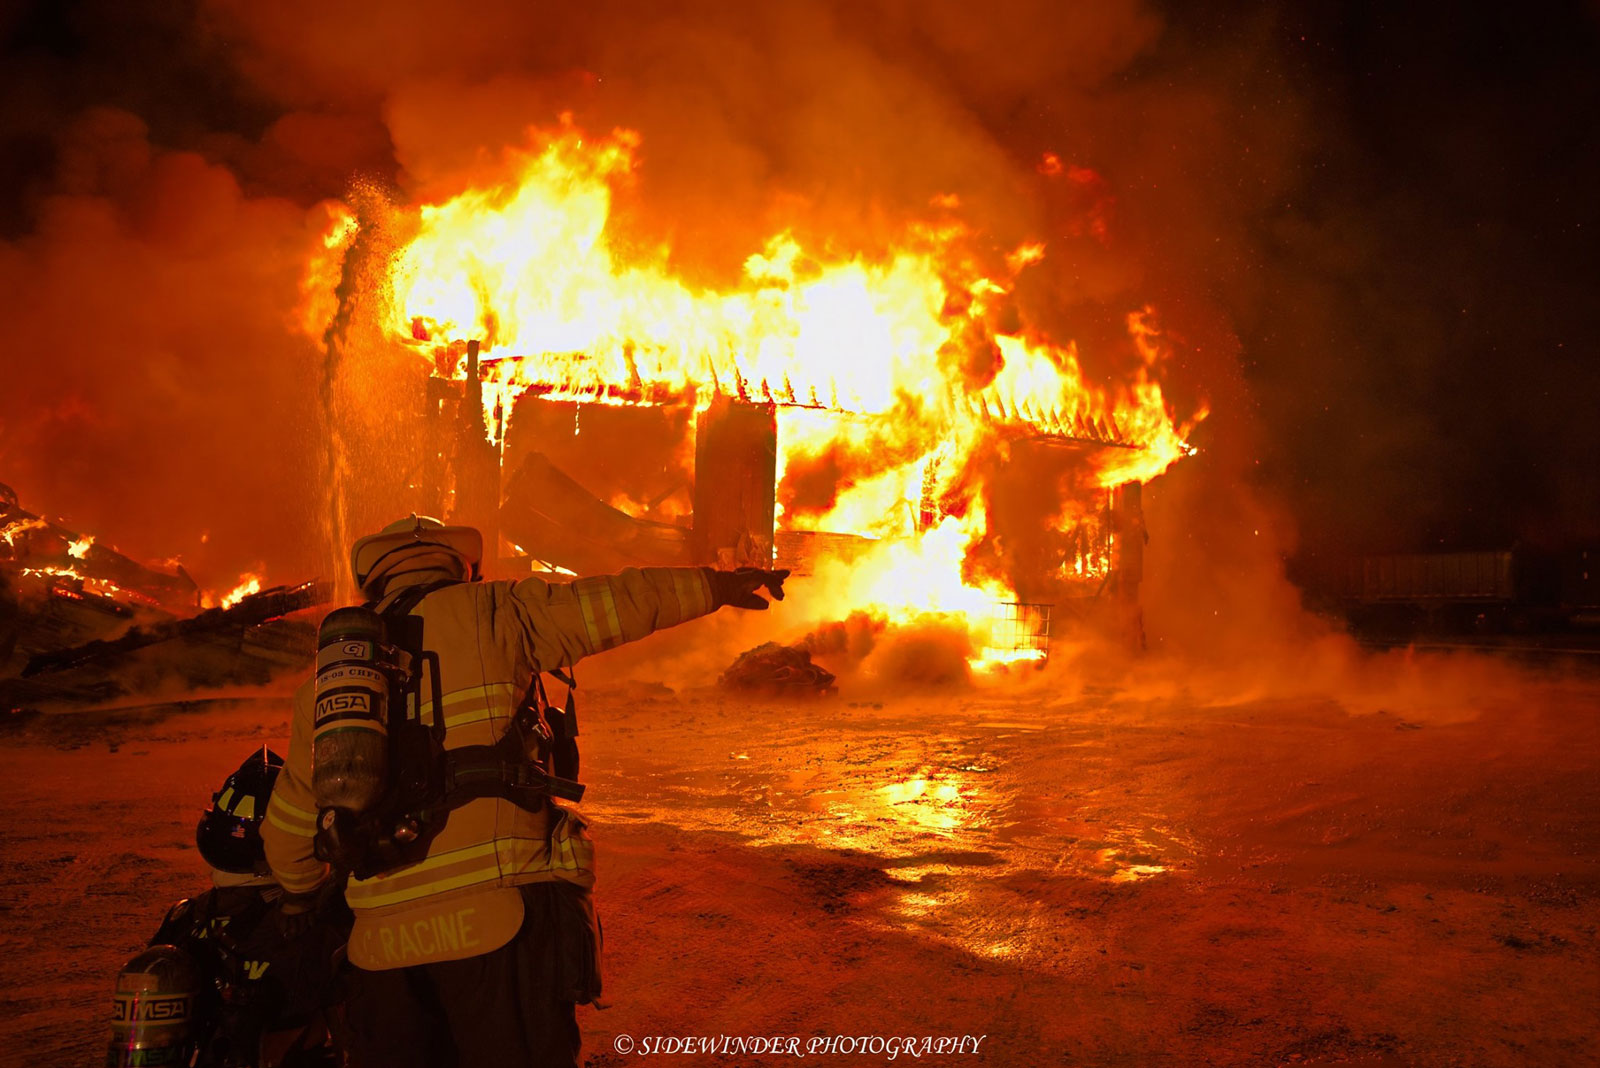 Firefighter at the scene of a major fire in Schodack, New York